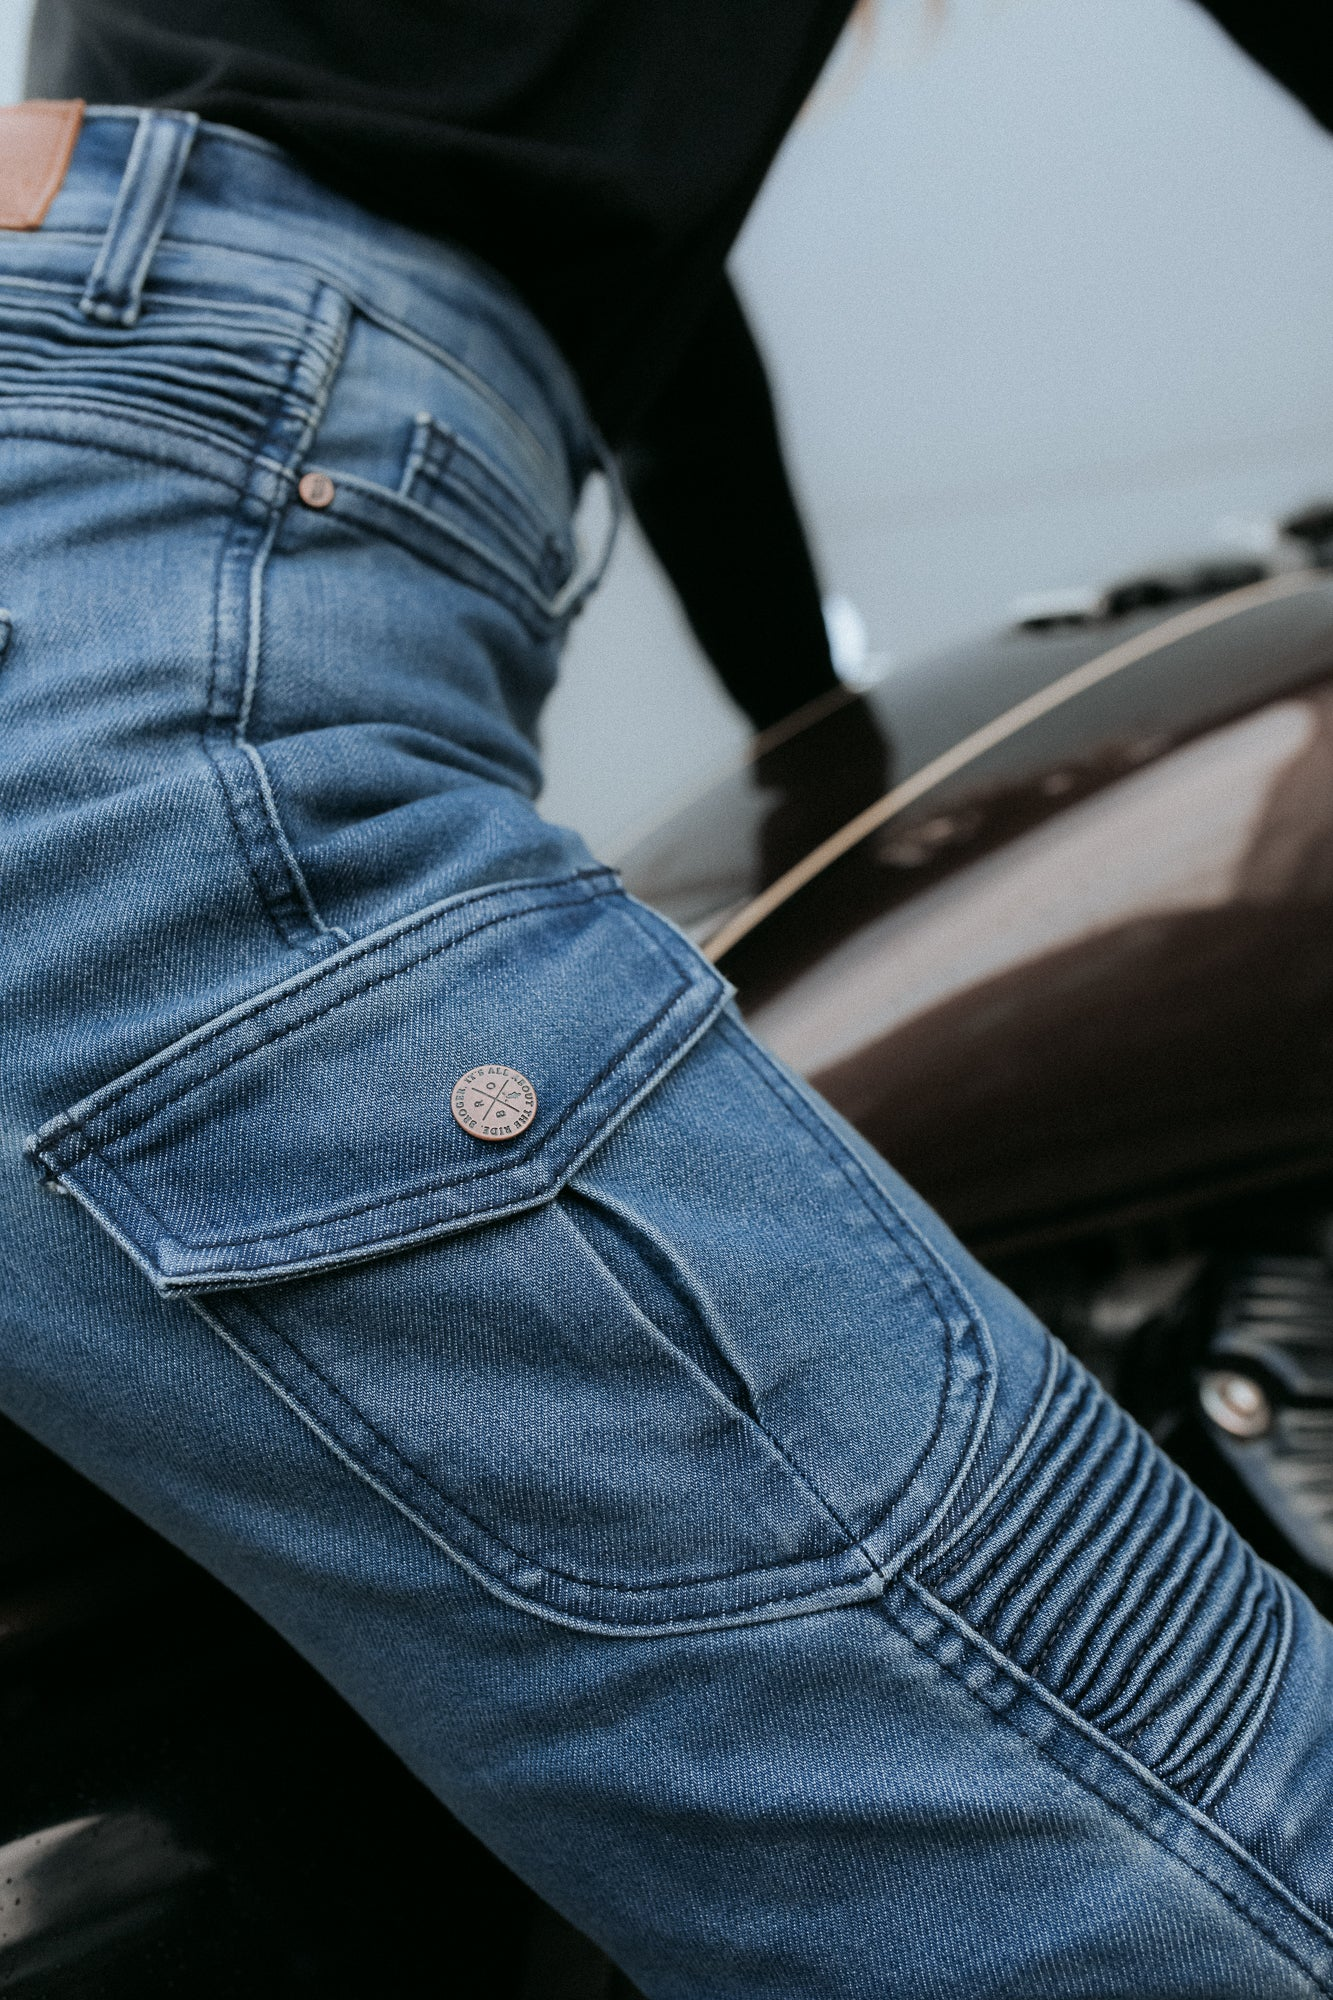 Ohio Lady Jeans - Cordura® & Coolmax® | Washed Blue